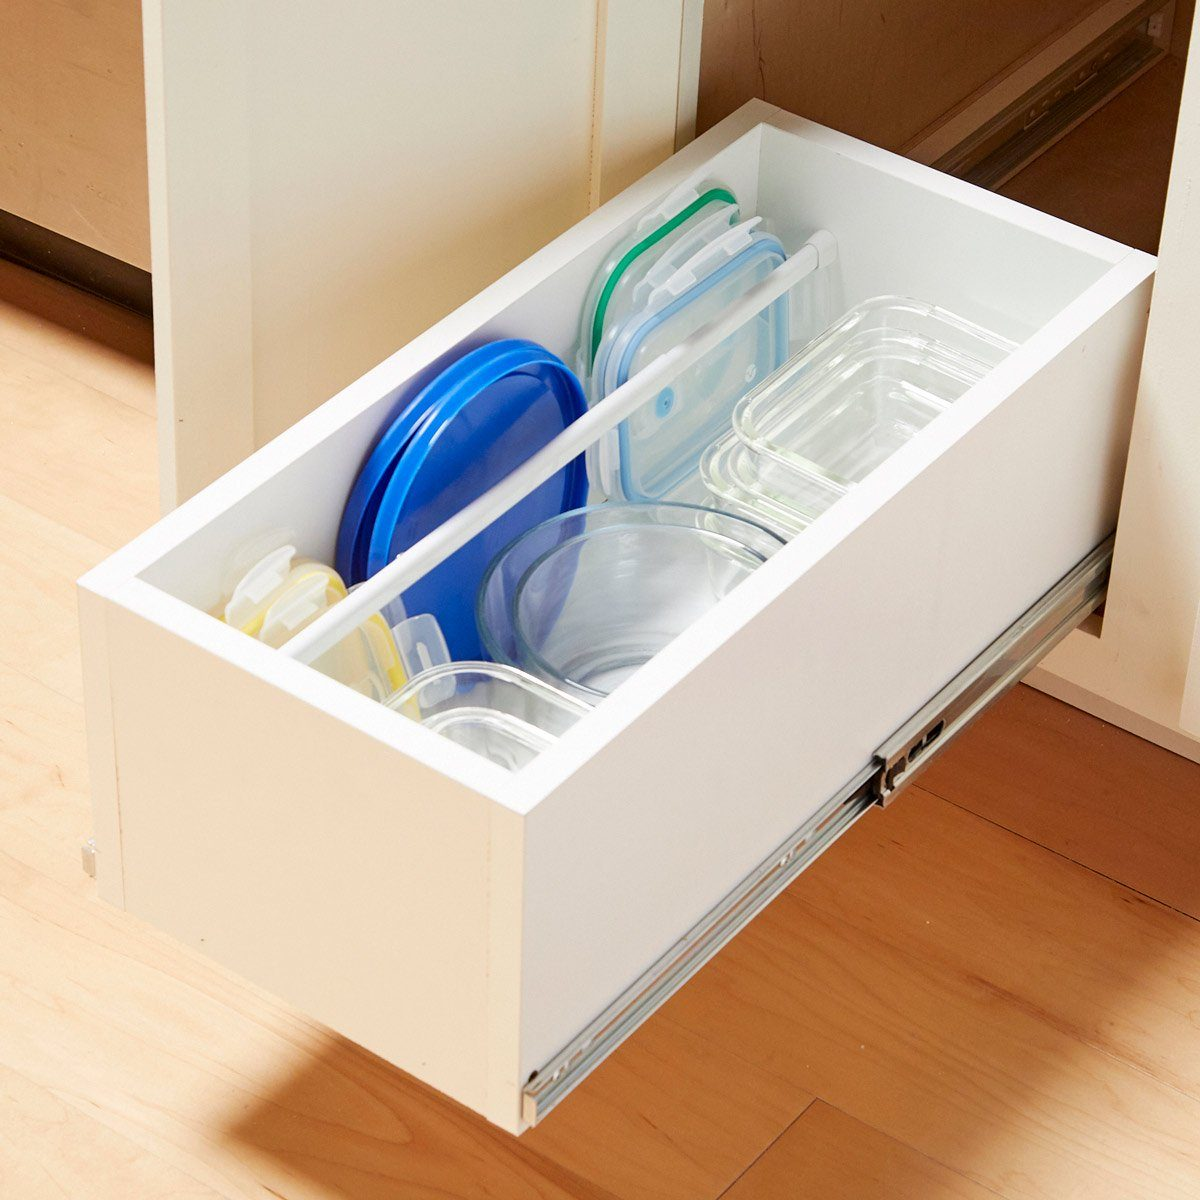 This Genius Idea Will Keep Your Food Storage Containers Organized for Good